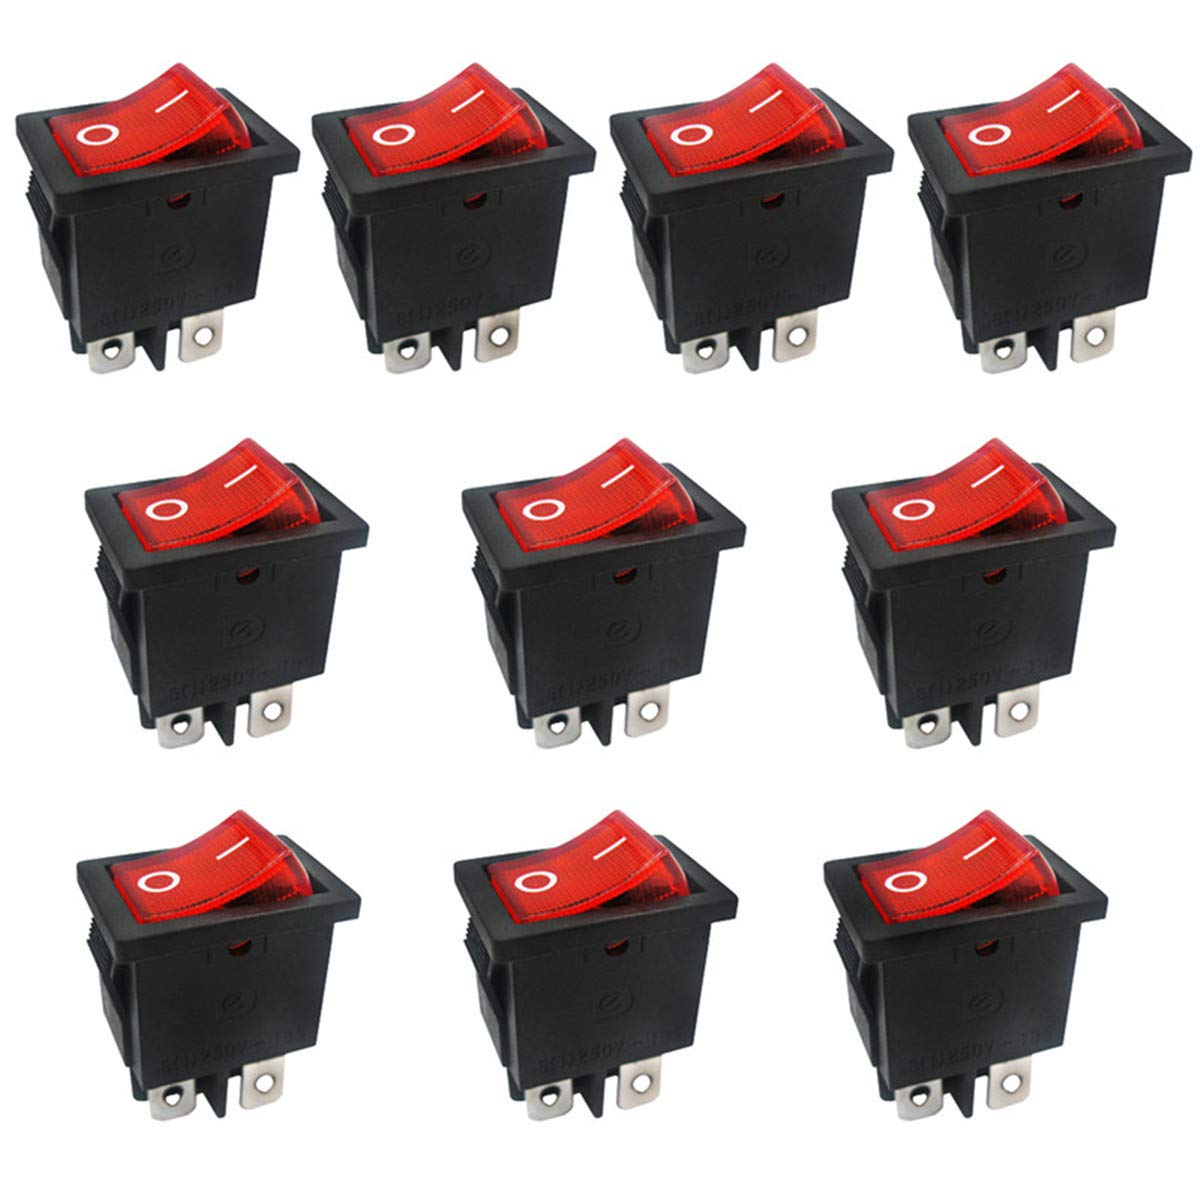 2Pcs Red Lamp 3Pin ON//OFF 2 Position Rocker Switch 10A//250VAC Panel Mount